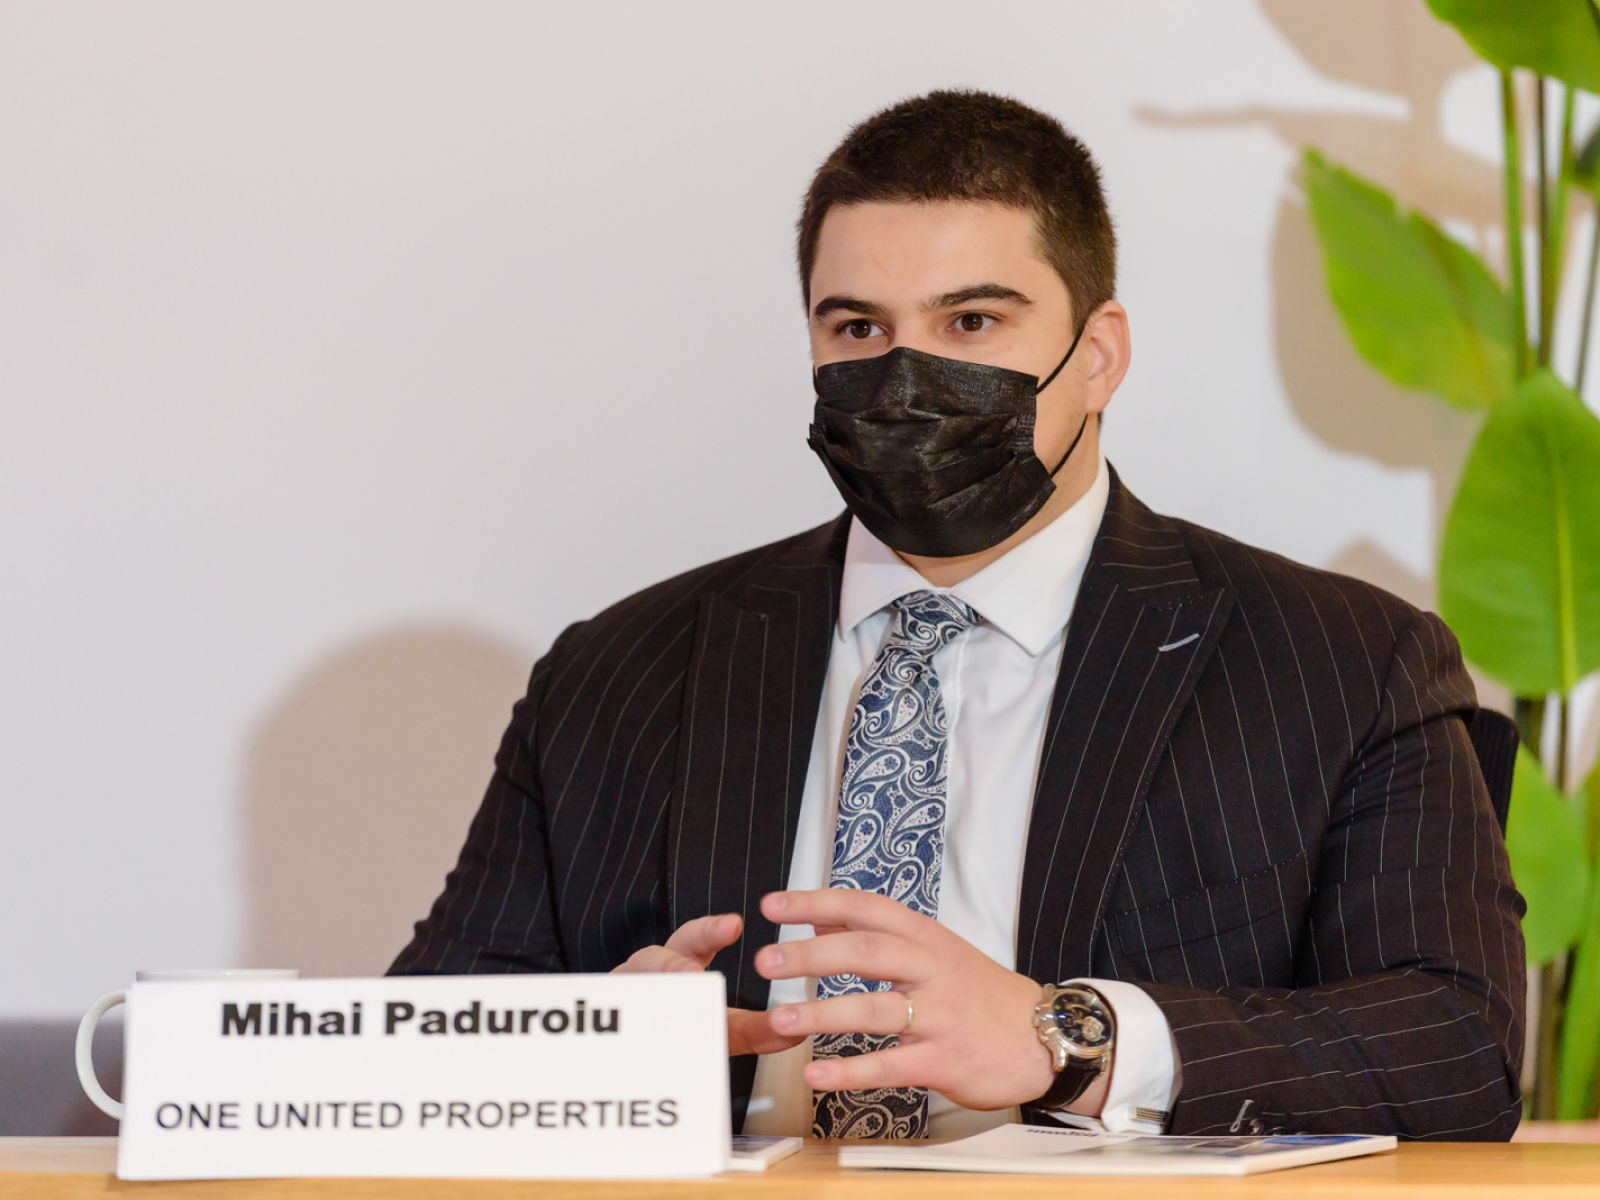 """Mihai Păduroiu, CEO Office Division One United Properties, at Bucharest Real Estate Club """"Media Days"""": The New Face of Bucharest"""